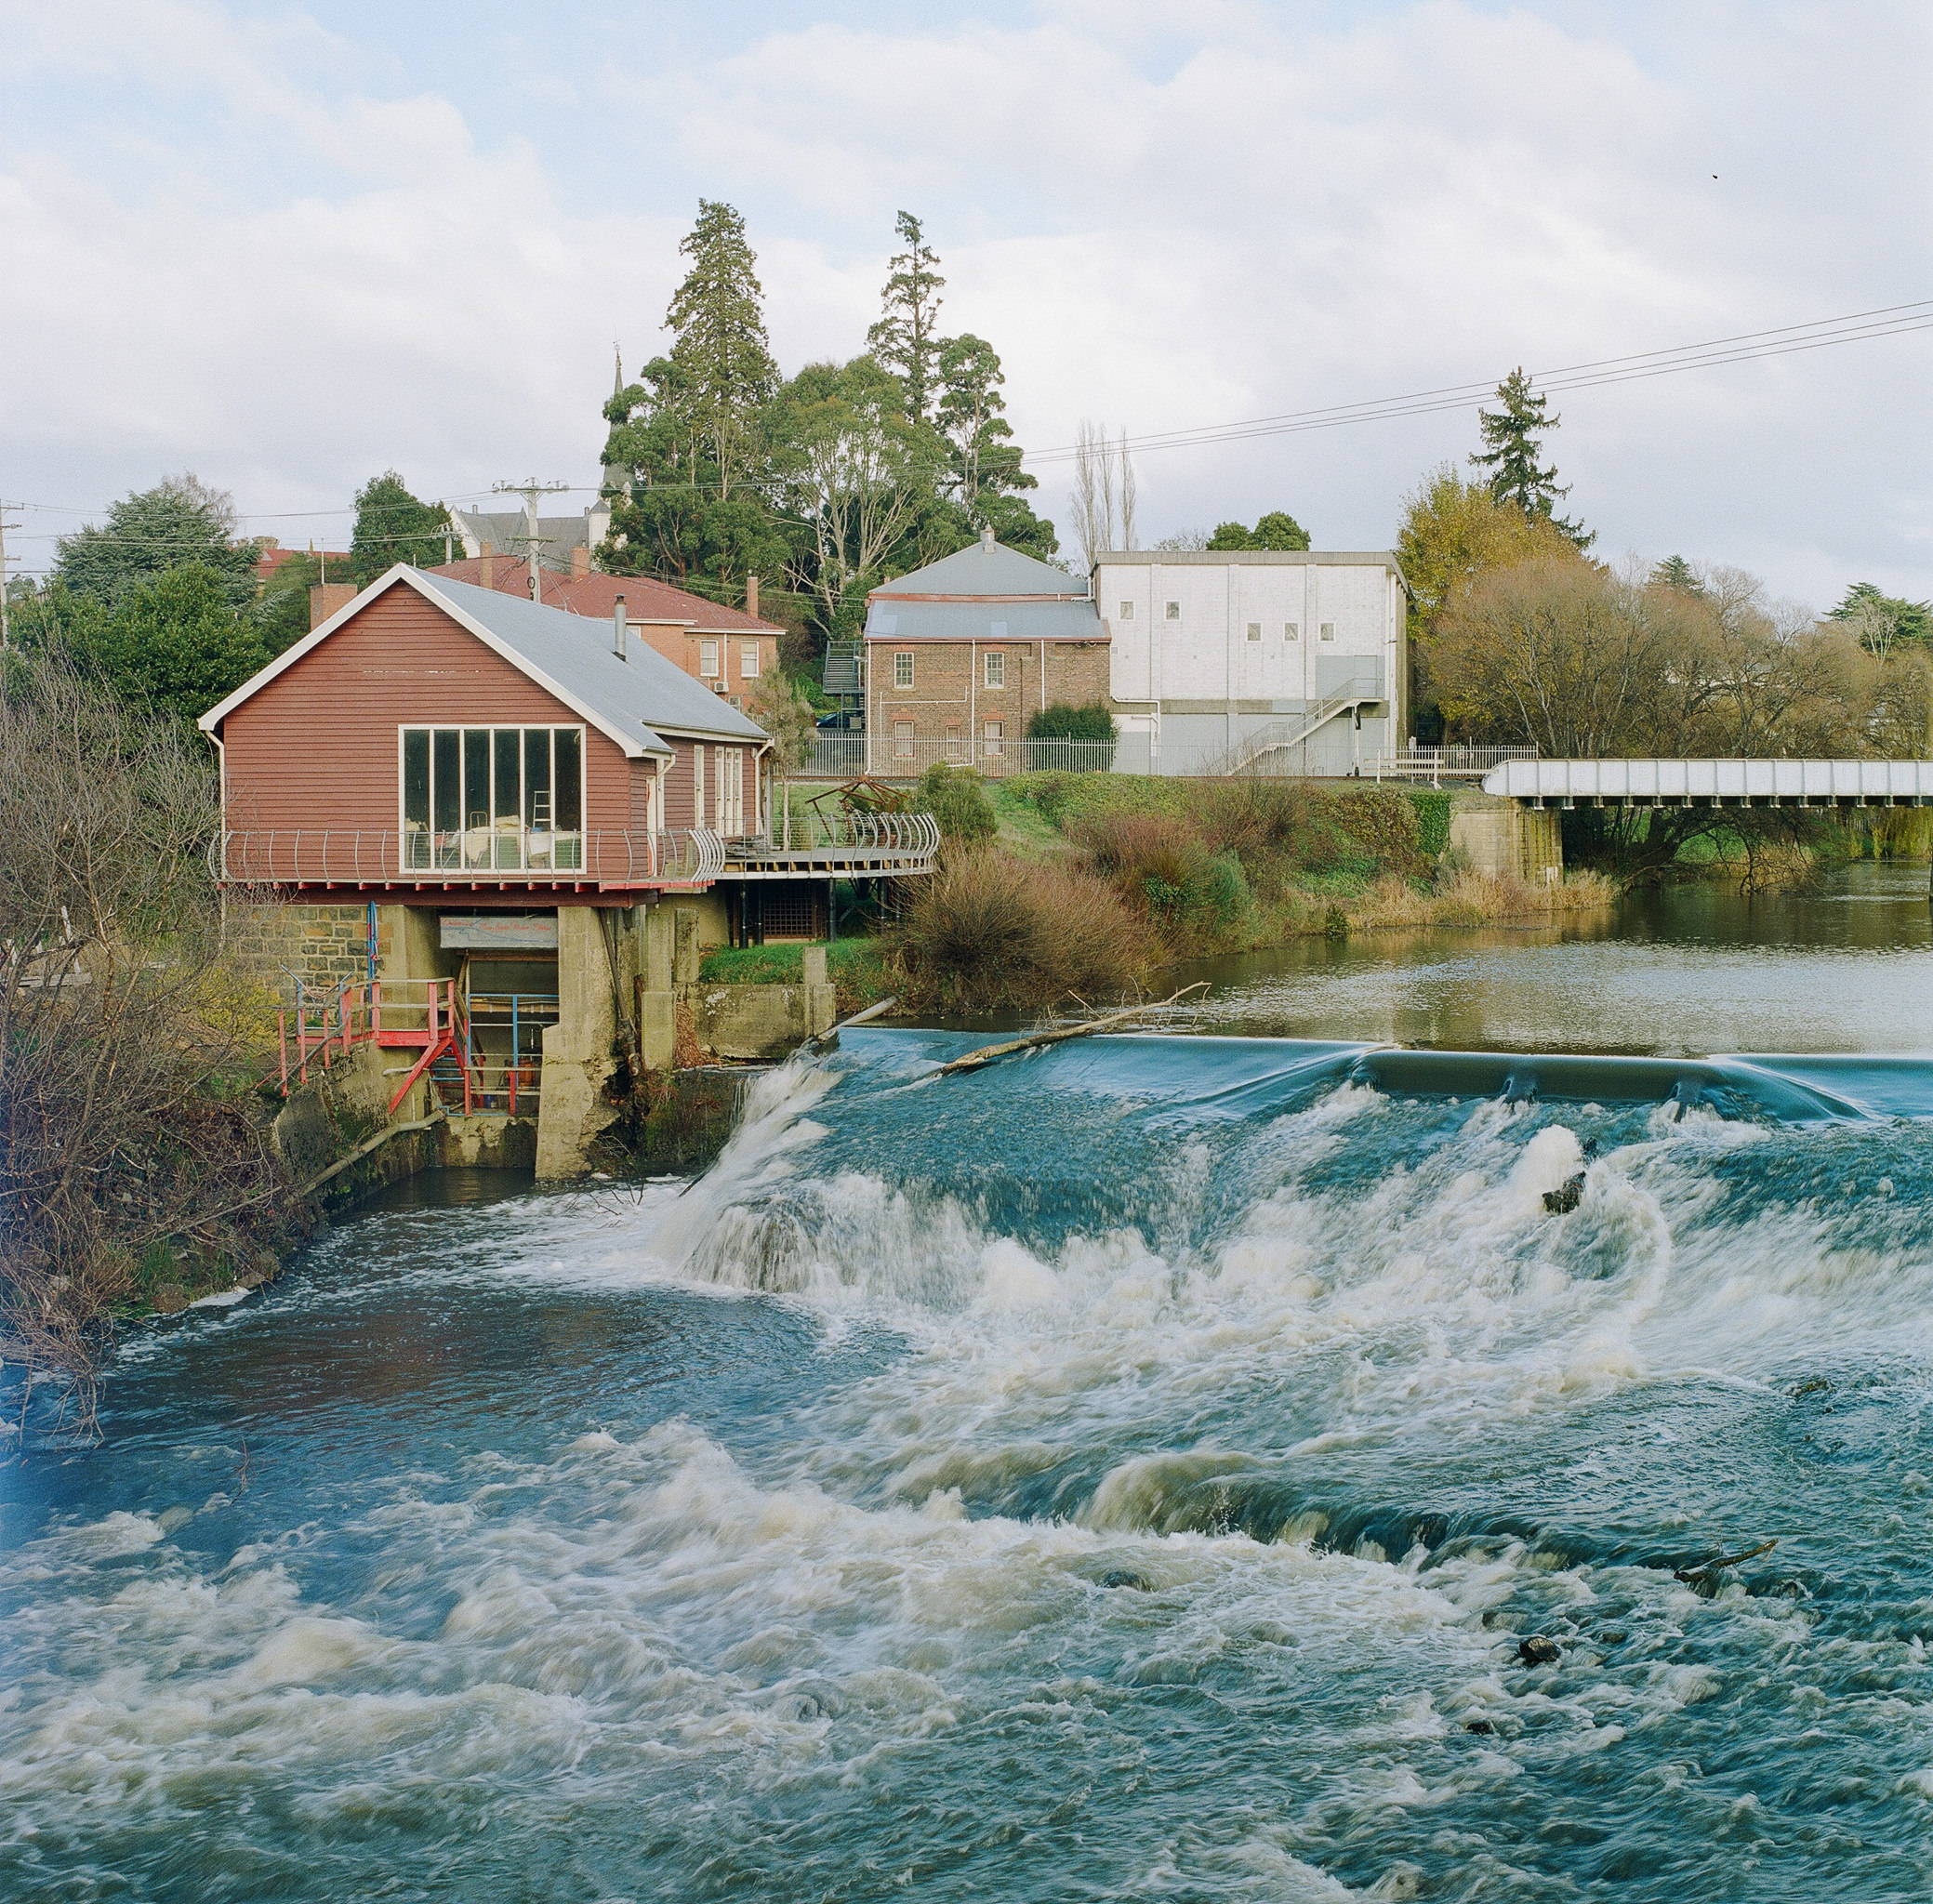 The old Power House and the Meander River